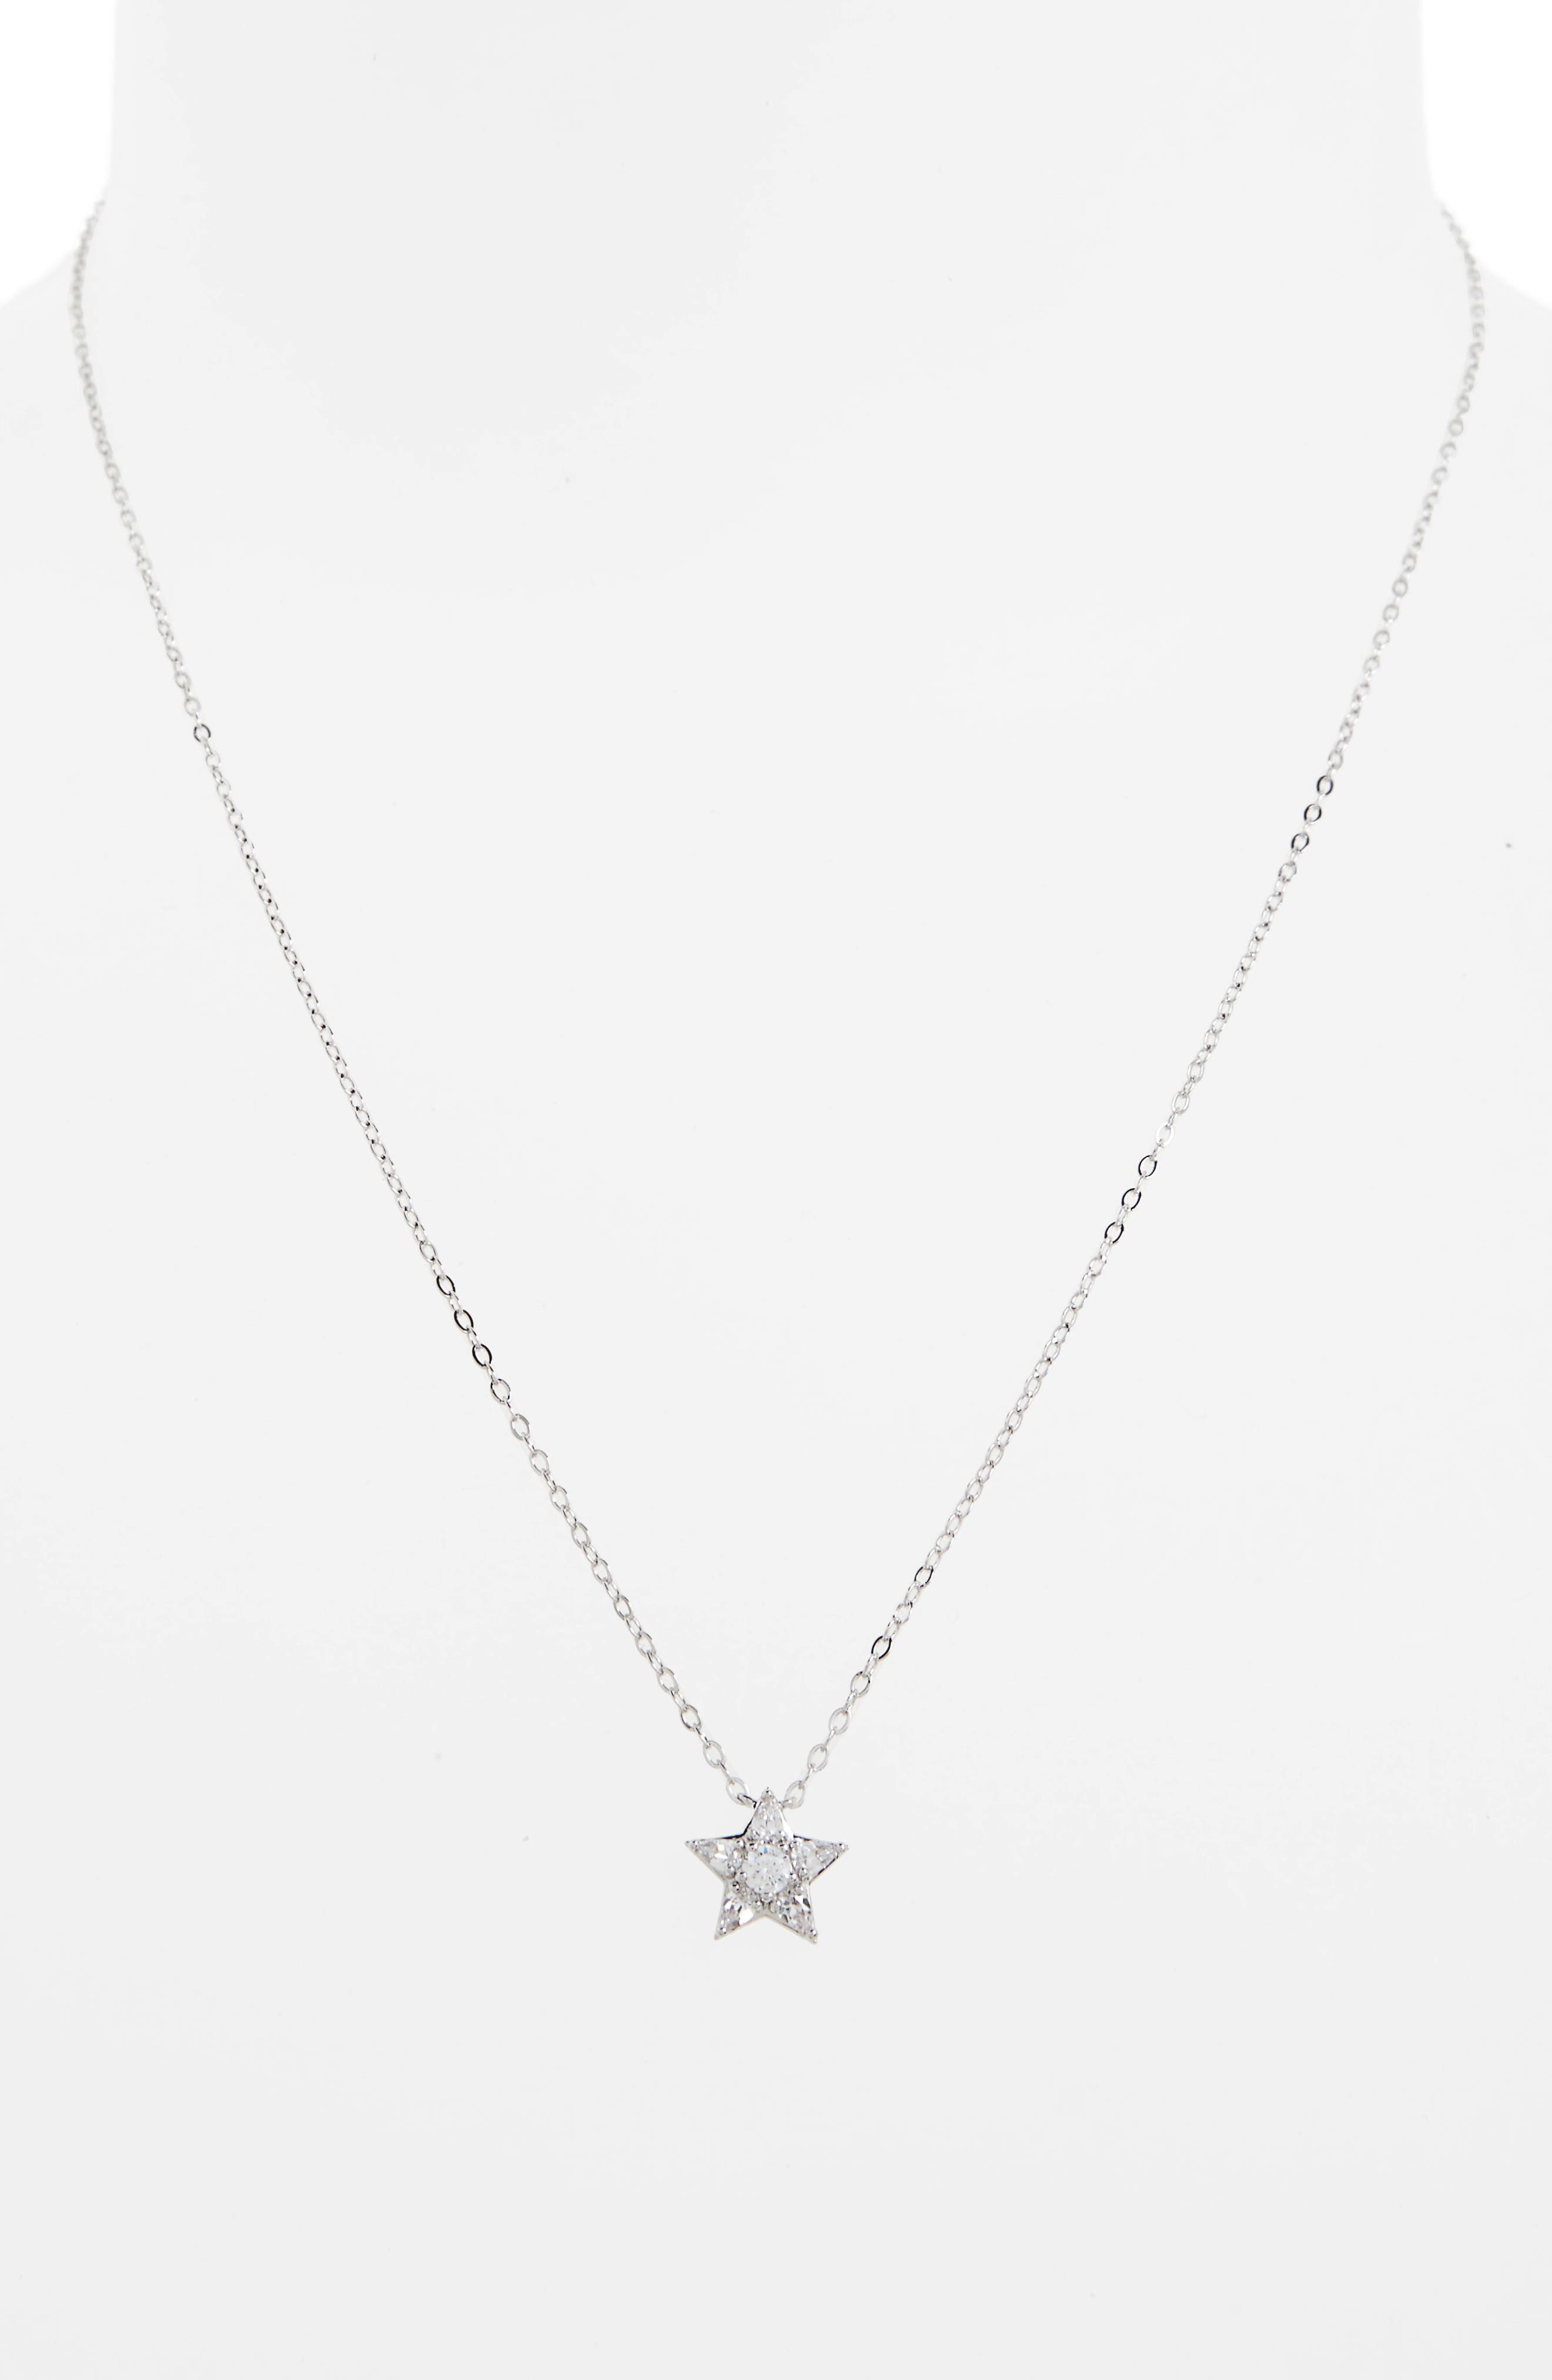 Reminisce Star Pendant Necklace,                             Alternate thumbnail 2, color,                             044